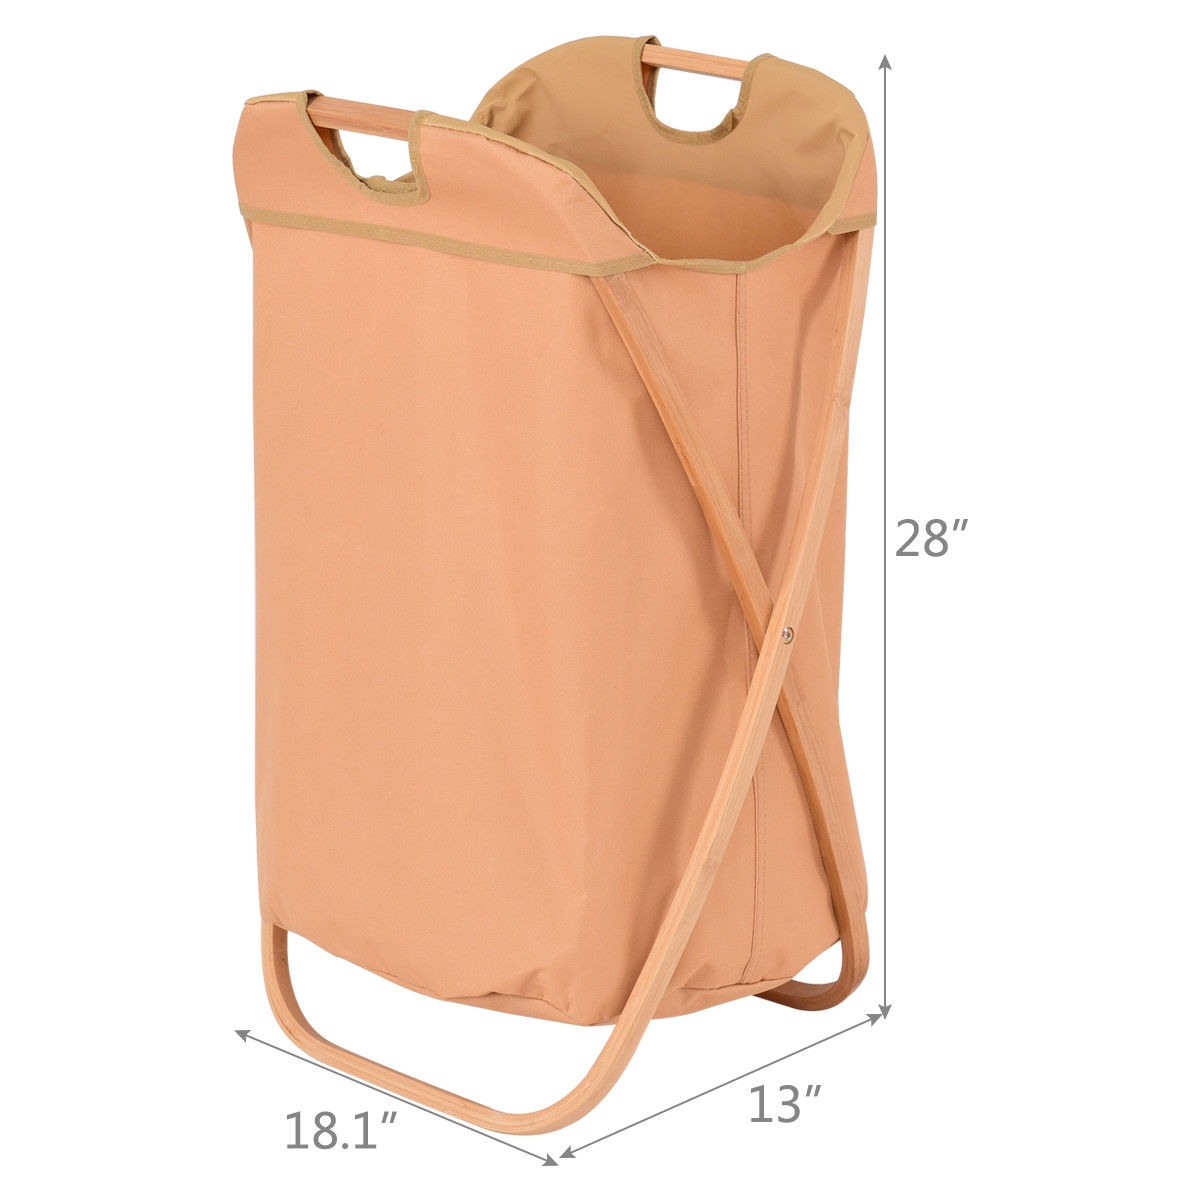 Folding X-Frame Laundry Hamper Clothes Storage Basket